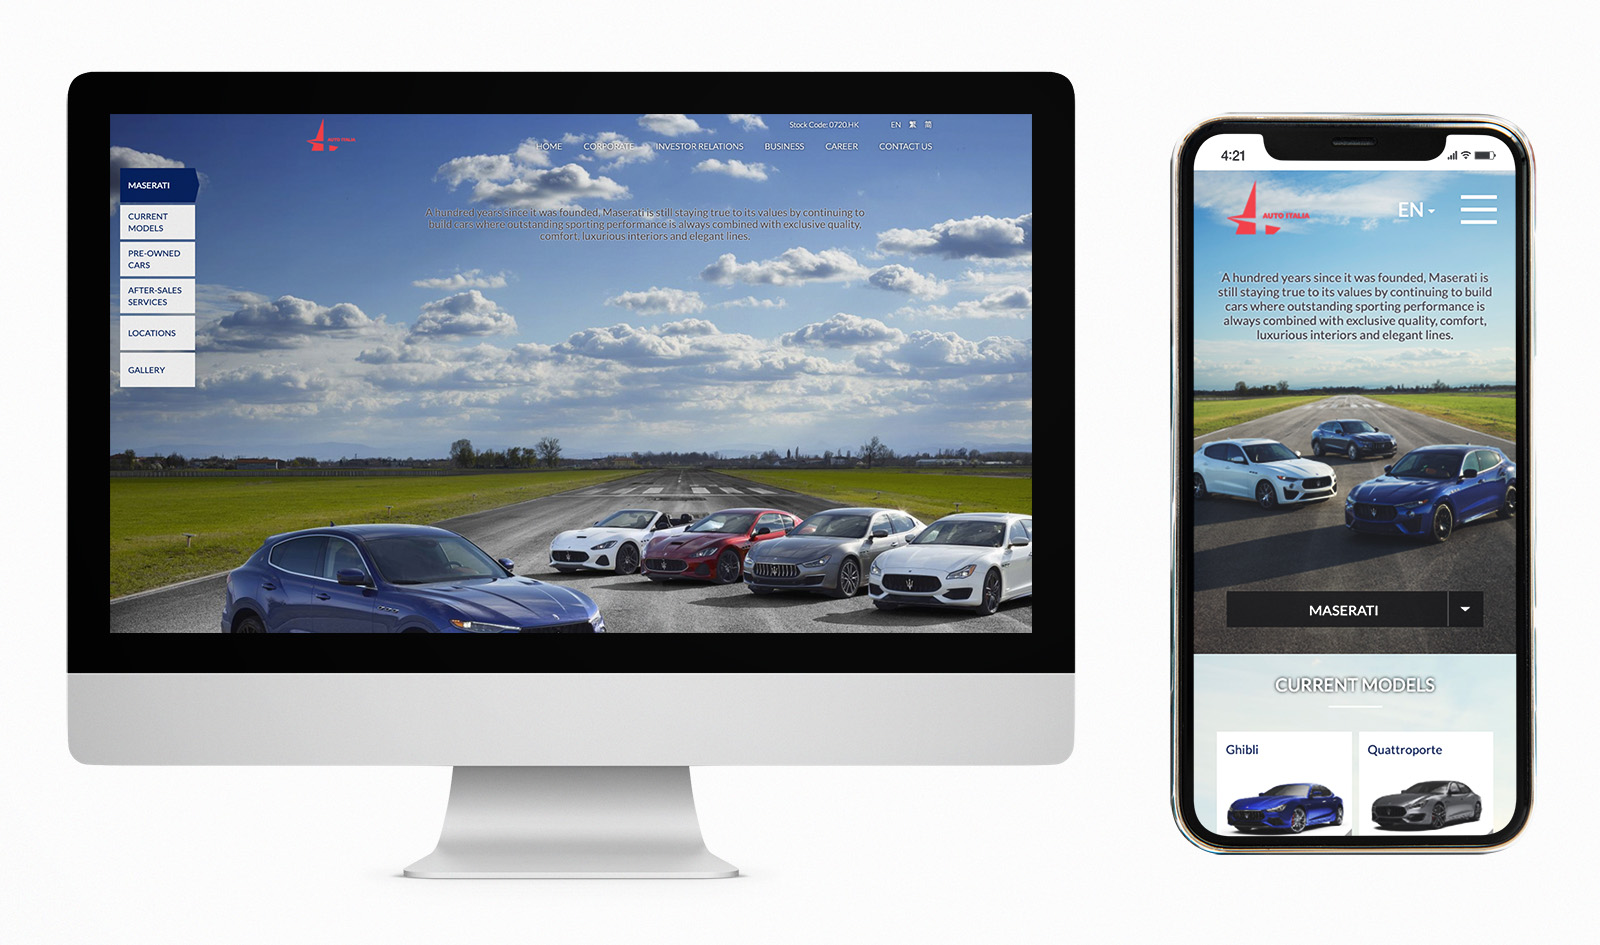 Desktop and Mobile View for Auto Italia Car Corporate Website